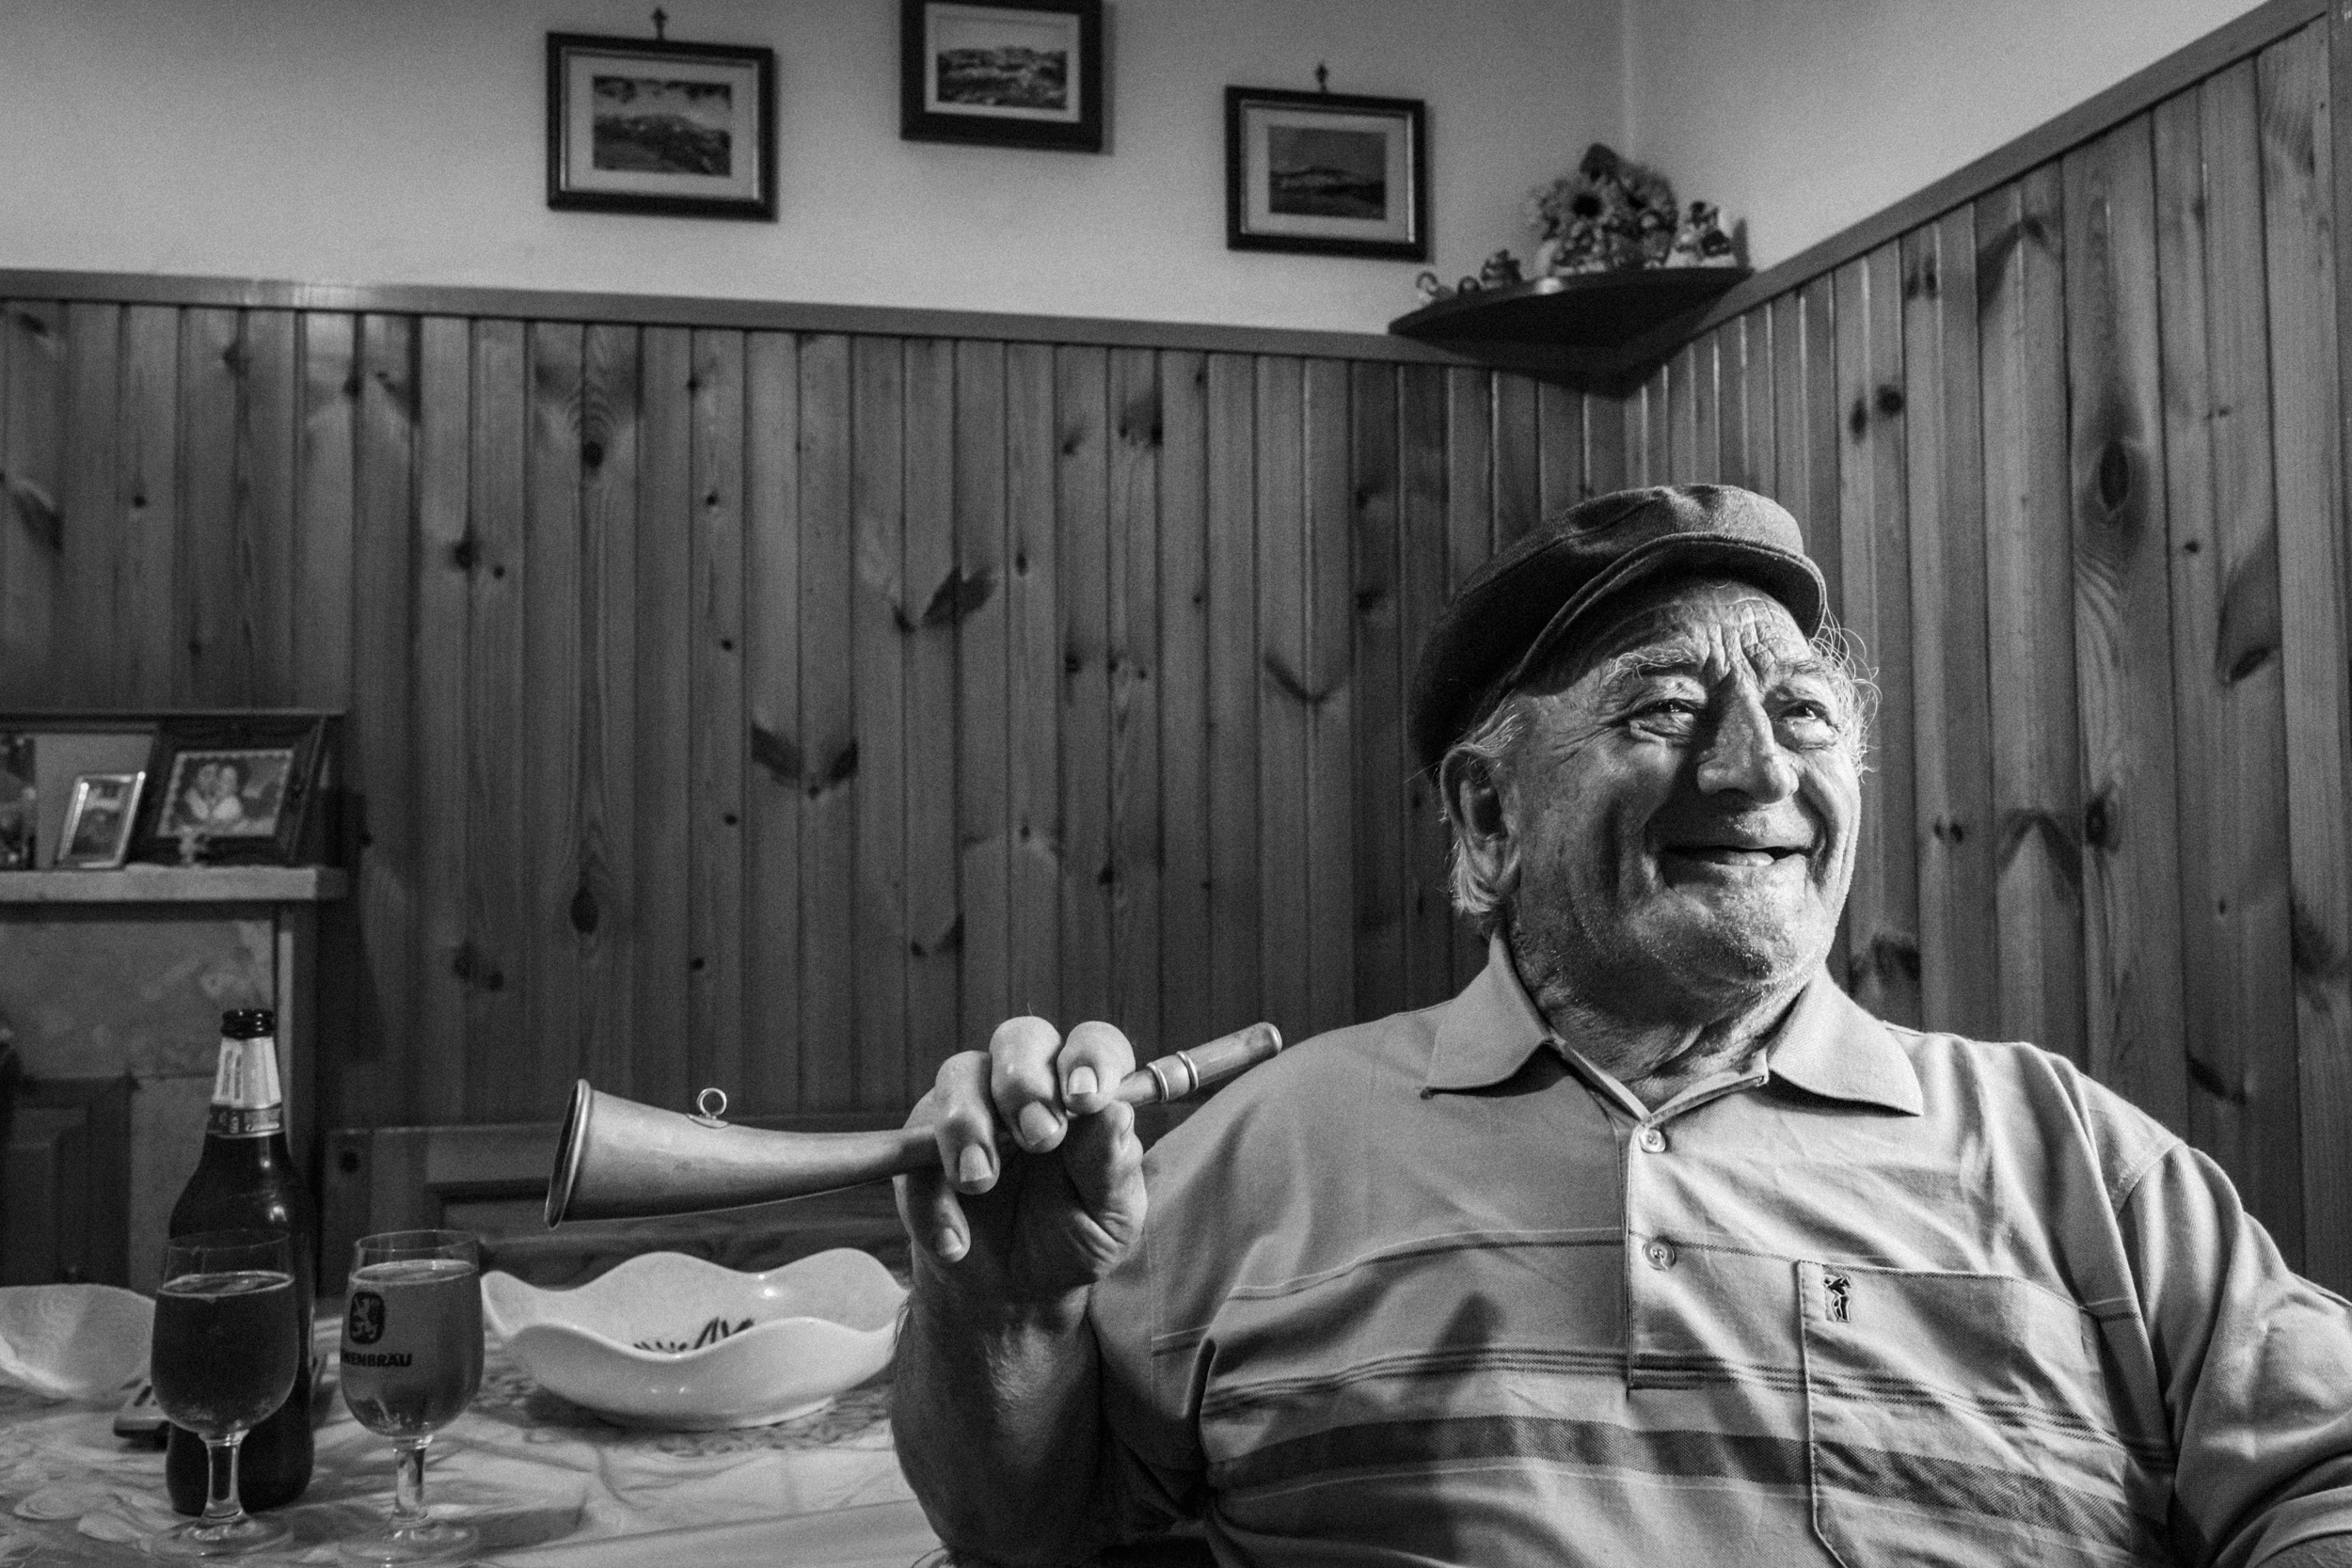 Vastogirardi (IS), Italy - July 2017. Felice Di Tella, born 1931, is the last village crier still in activity in the villages of the Altomolise. The crier used to read out loud along the streets of the village the orders of the authorities and the presence of sellers in the village market square.